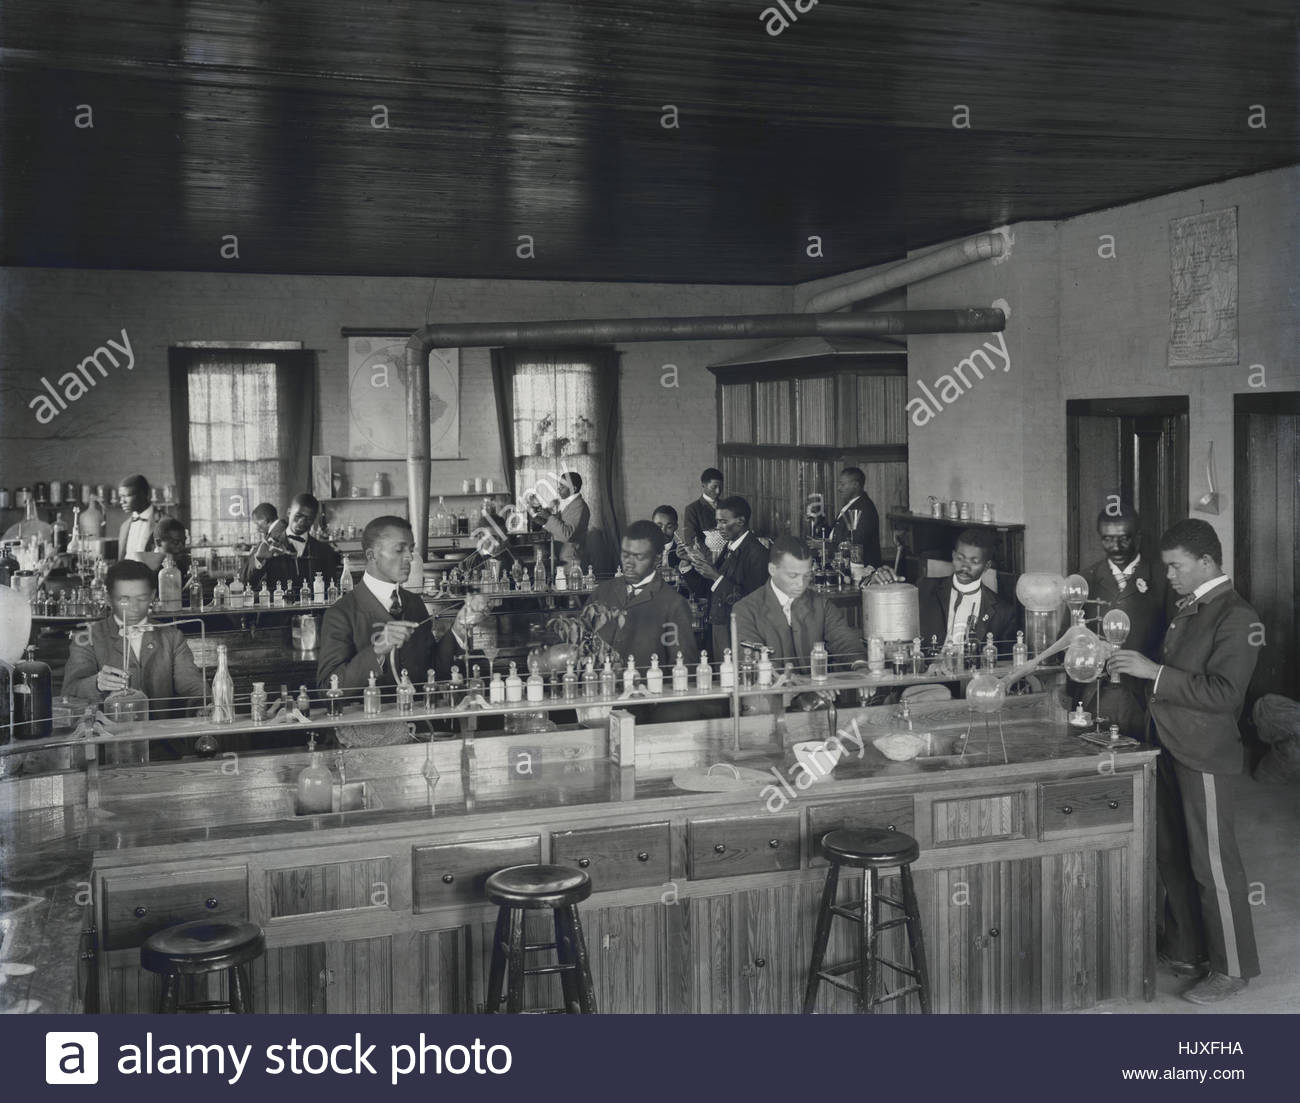 Students in Chemistry Class, Tuskegee Institute, Tuskegee, Alabama, USA, by Frances Benjamin Johnson, 1902 Stock Photo